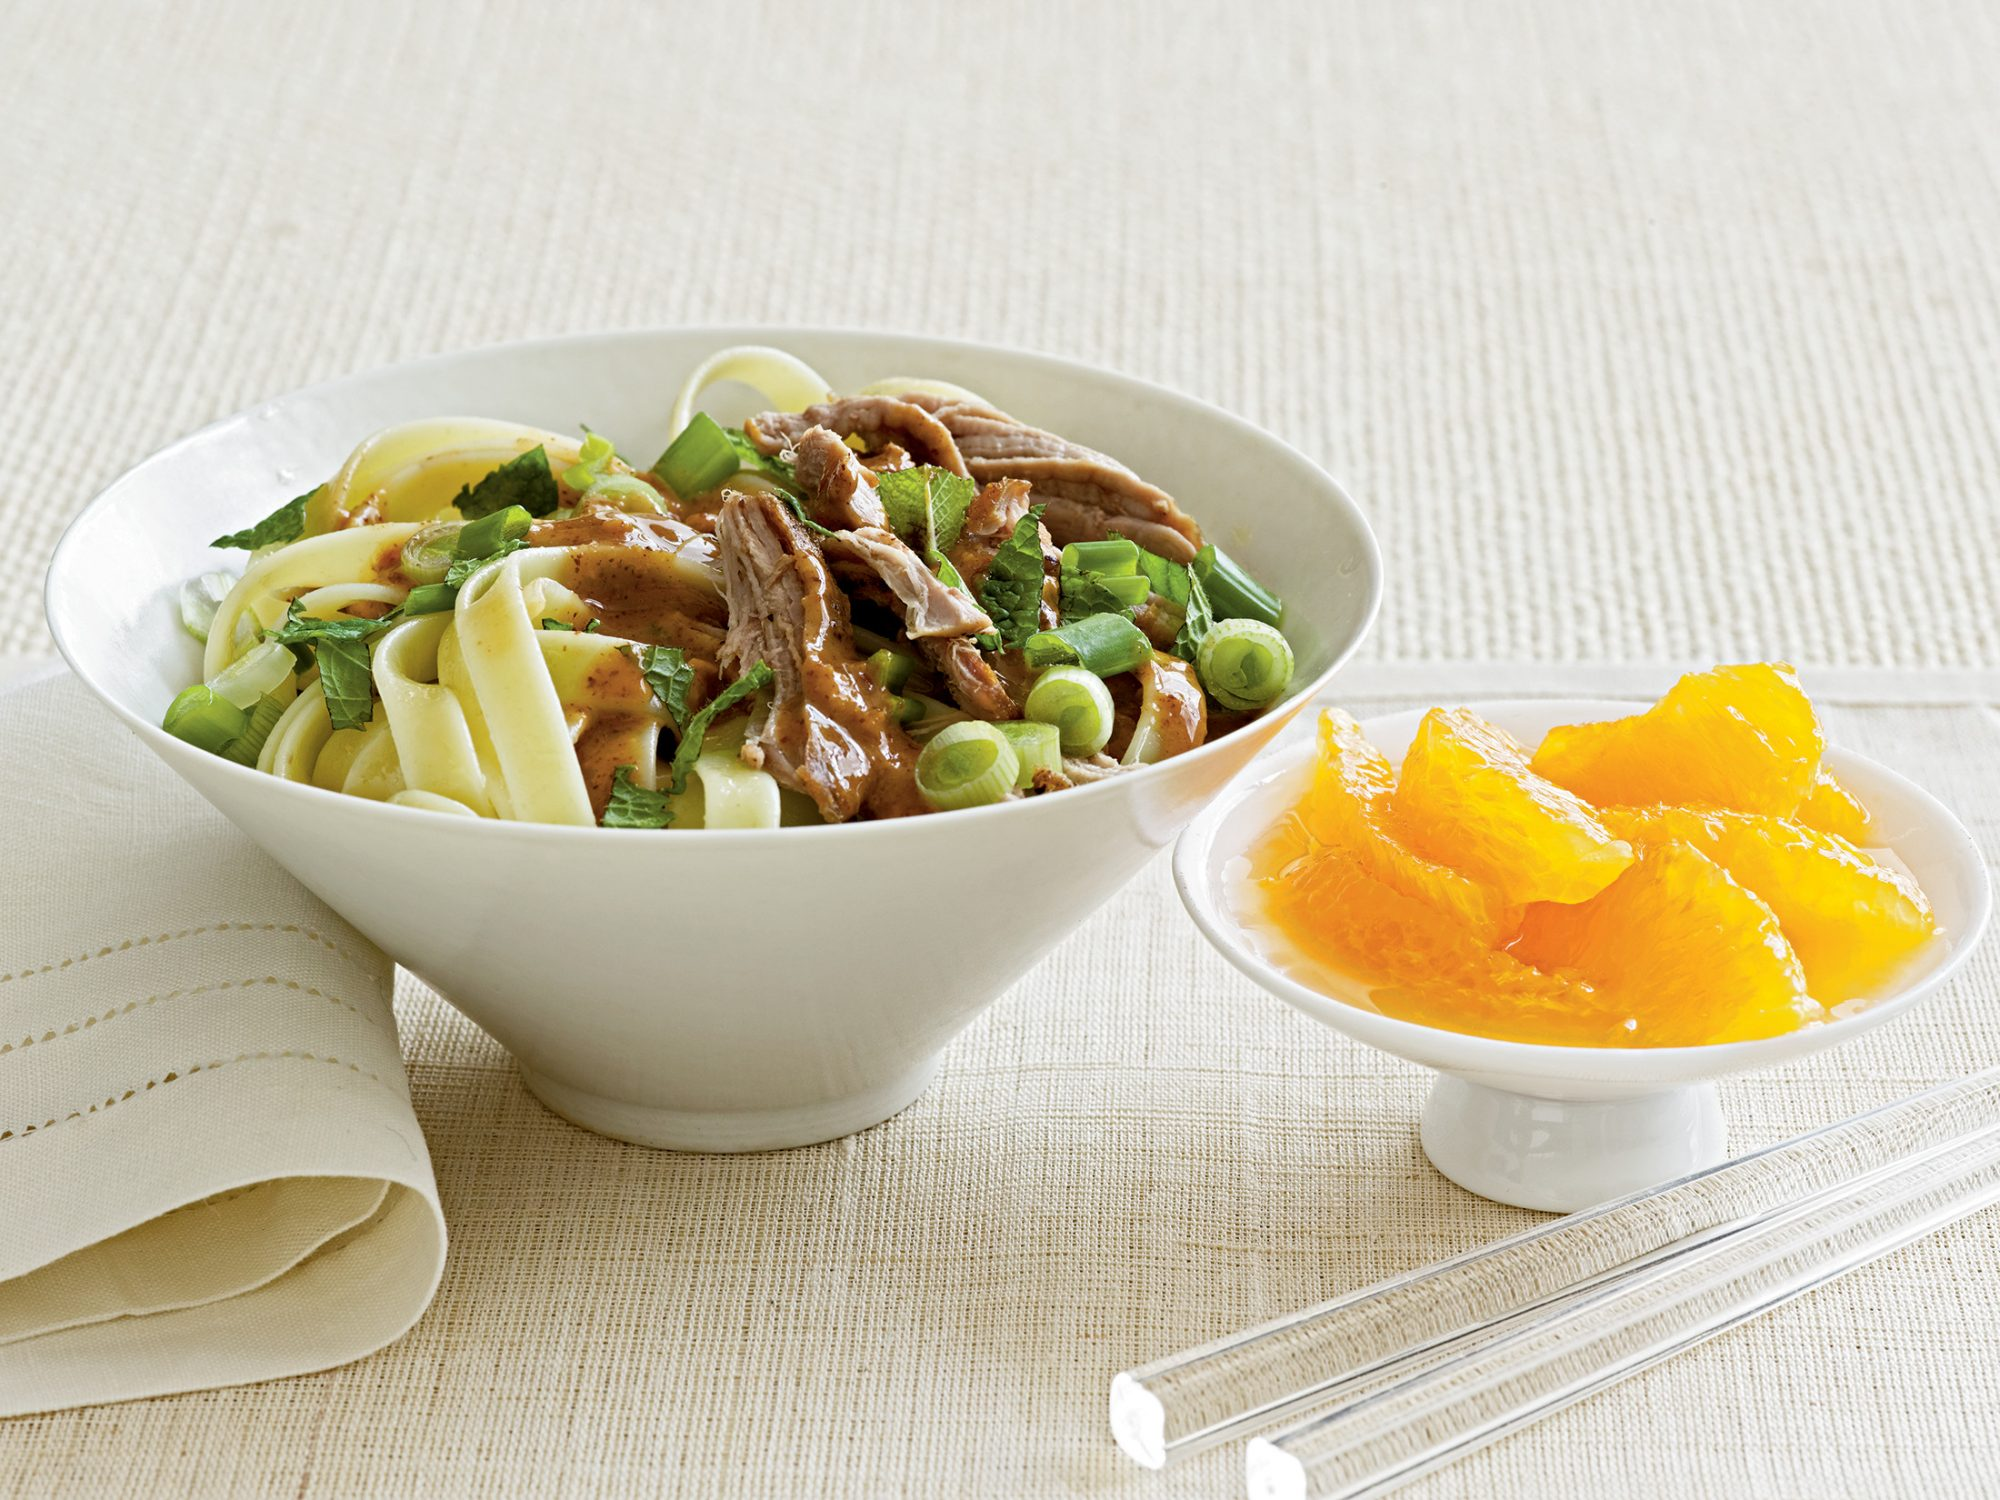 Noodles with Roast Pork and Almond Sauce